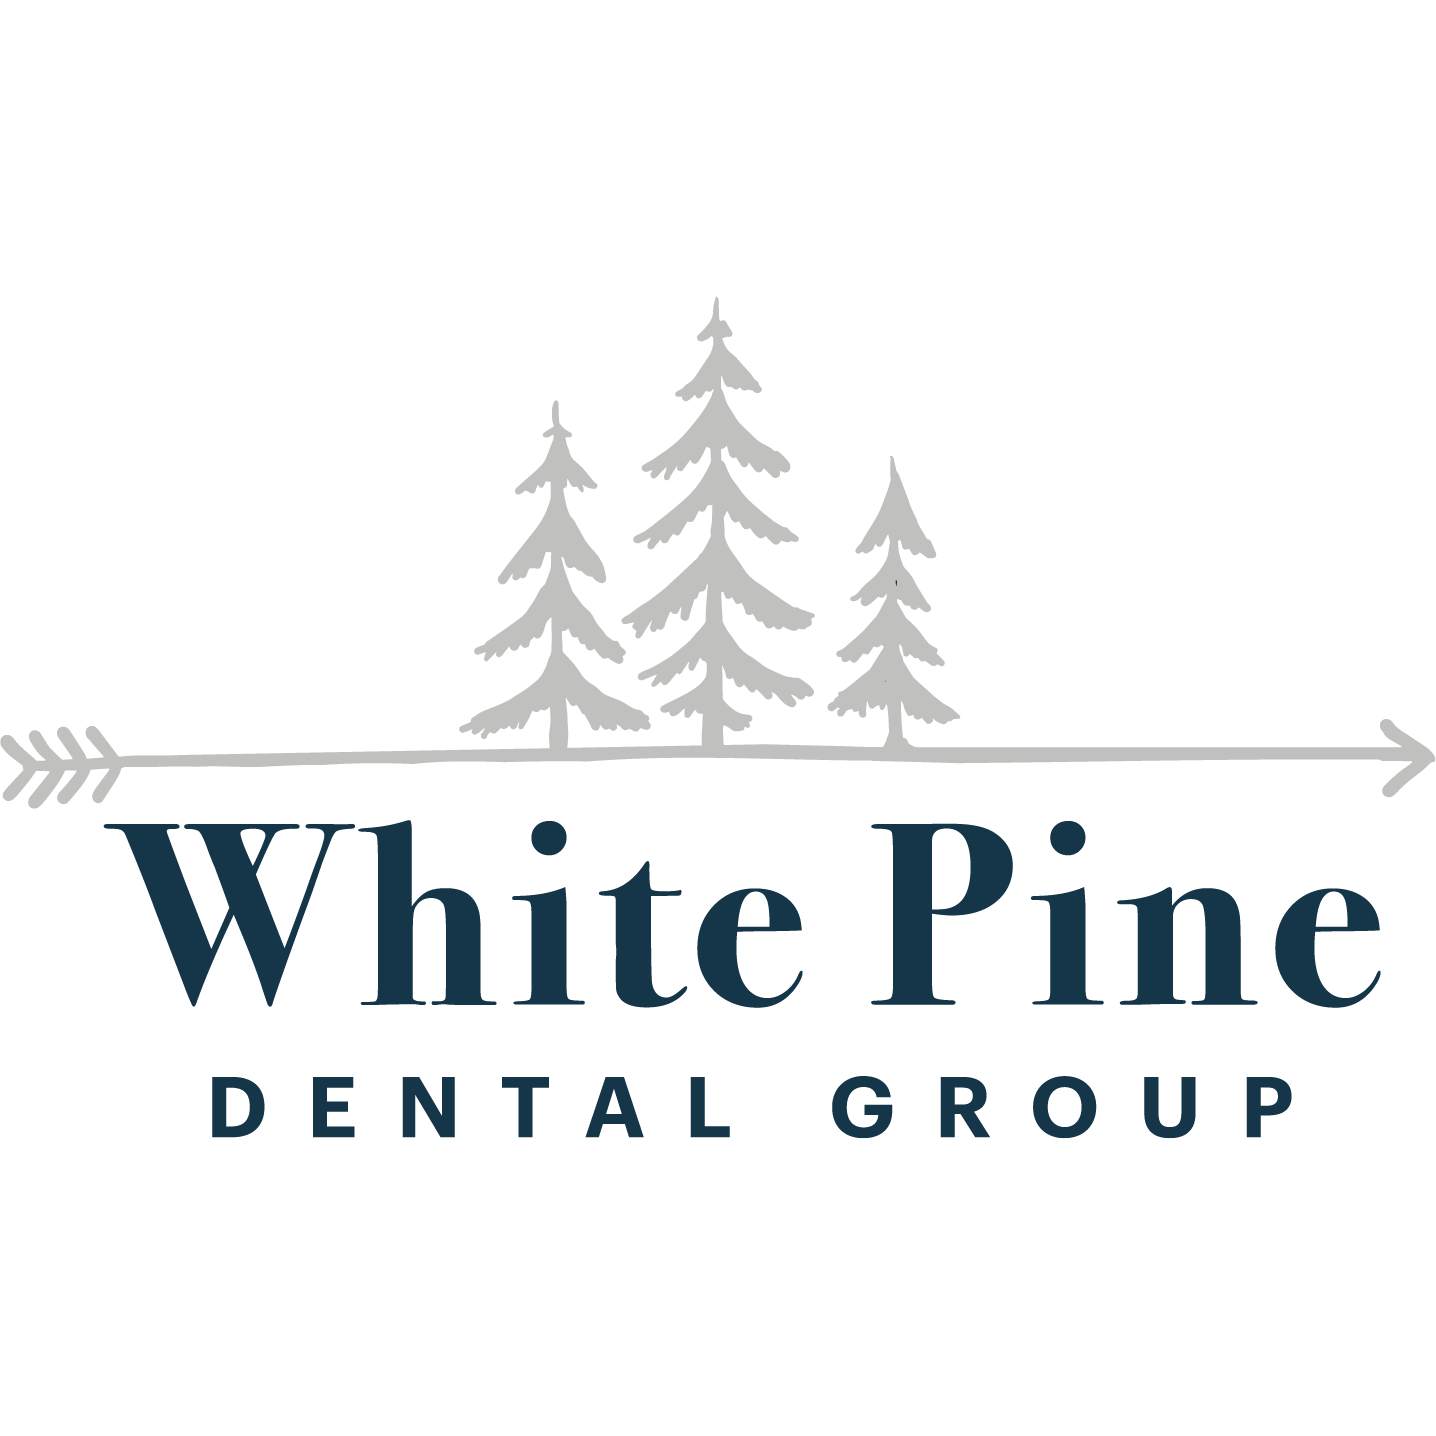 White Pine Dental Group